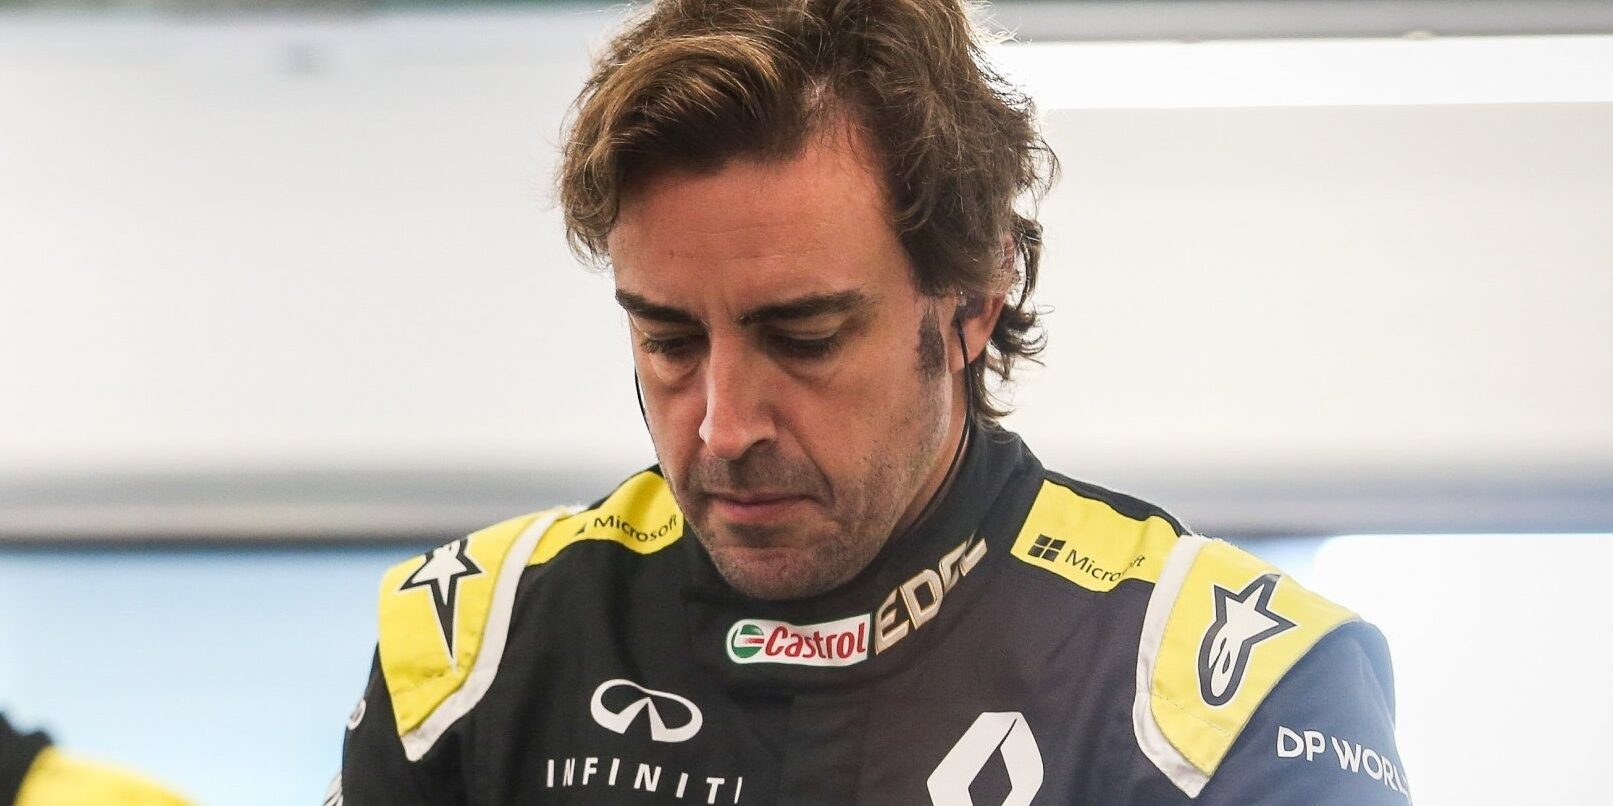 Fernando Alonso, pilot de Fórmula 1 | Europa Press